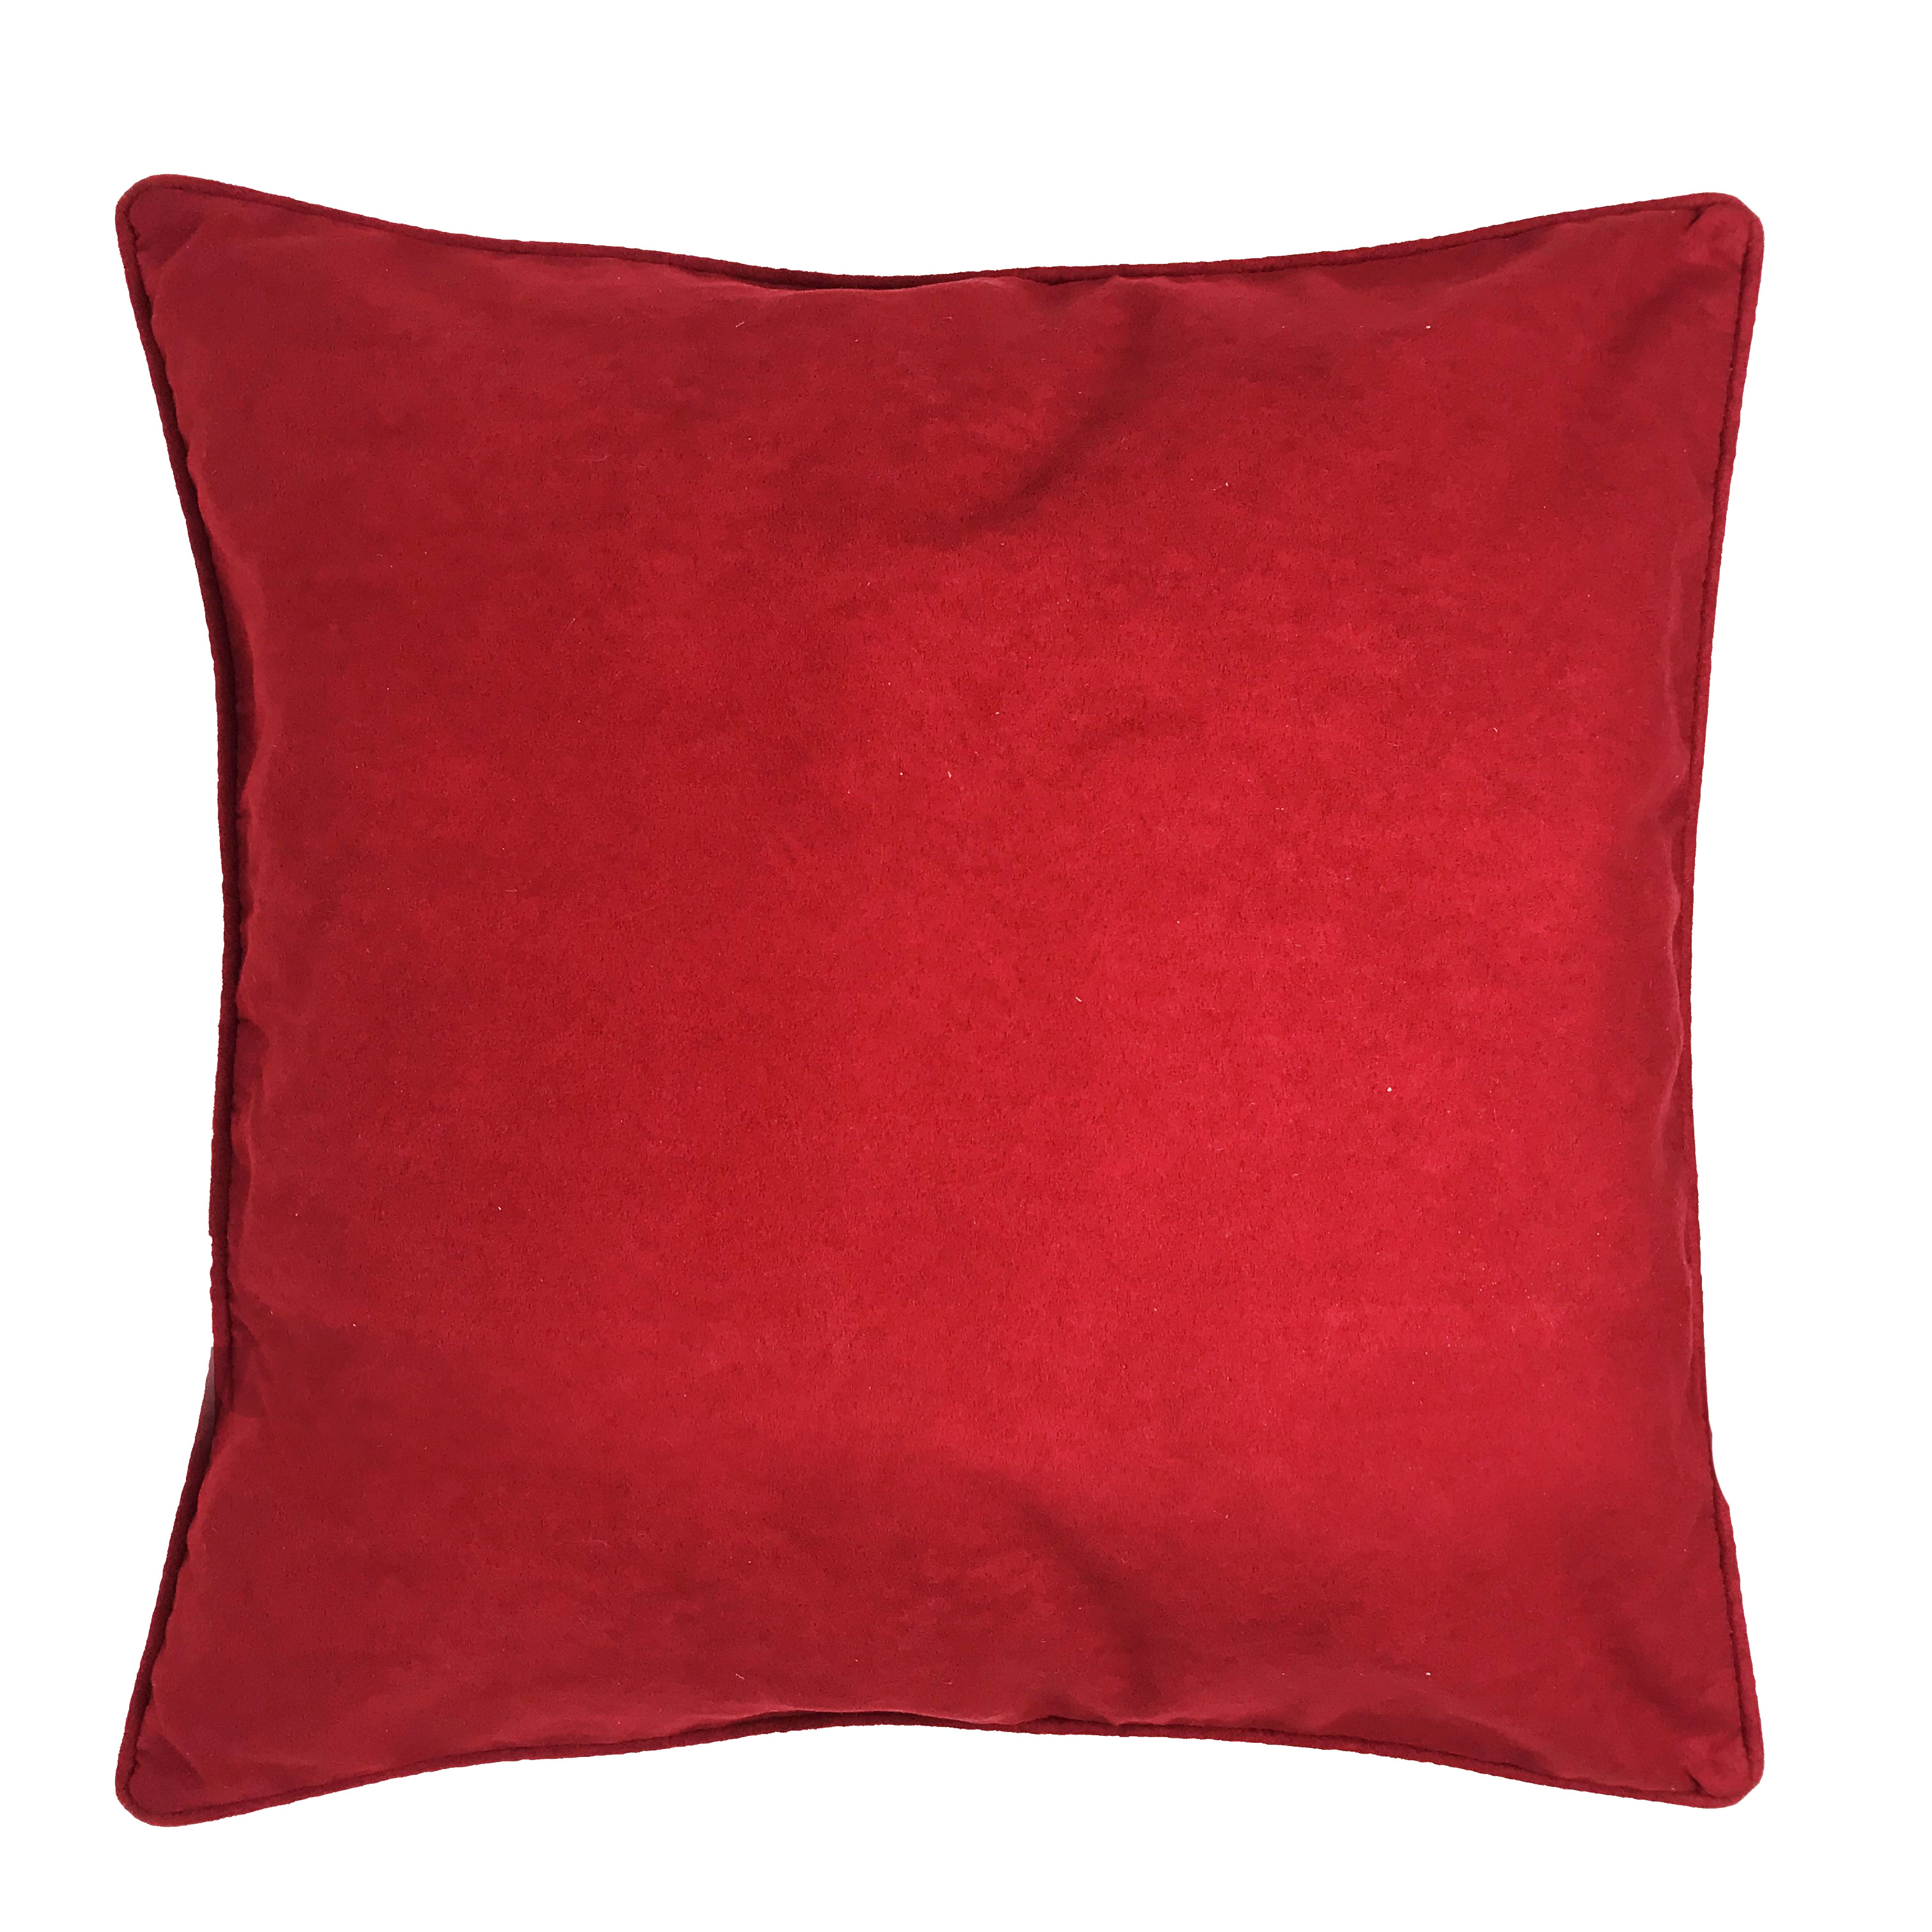 Piped Edge Red Suede 45cm x 45cm Hollowfibre Bounce Back Filled Cushion